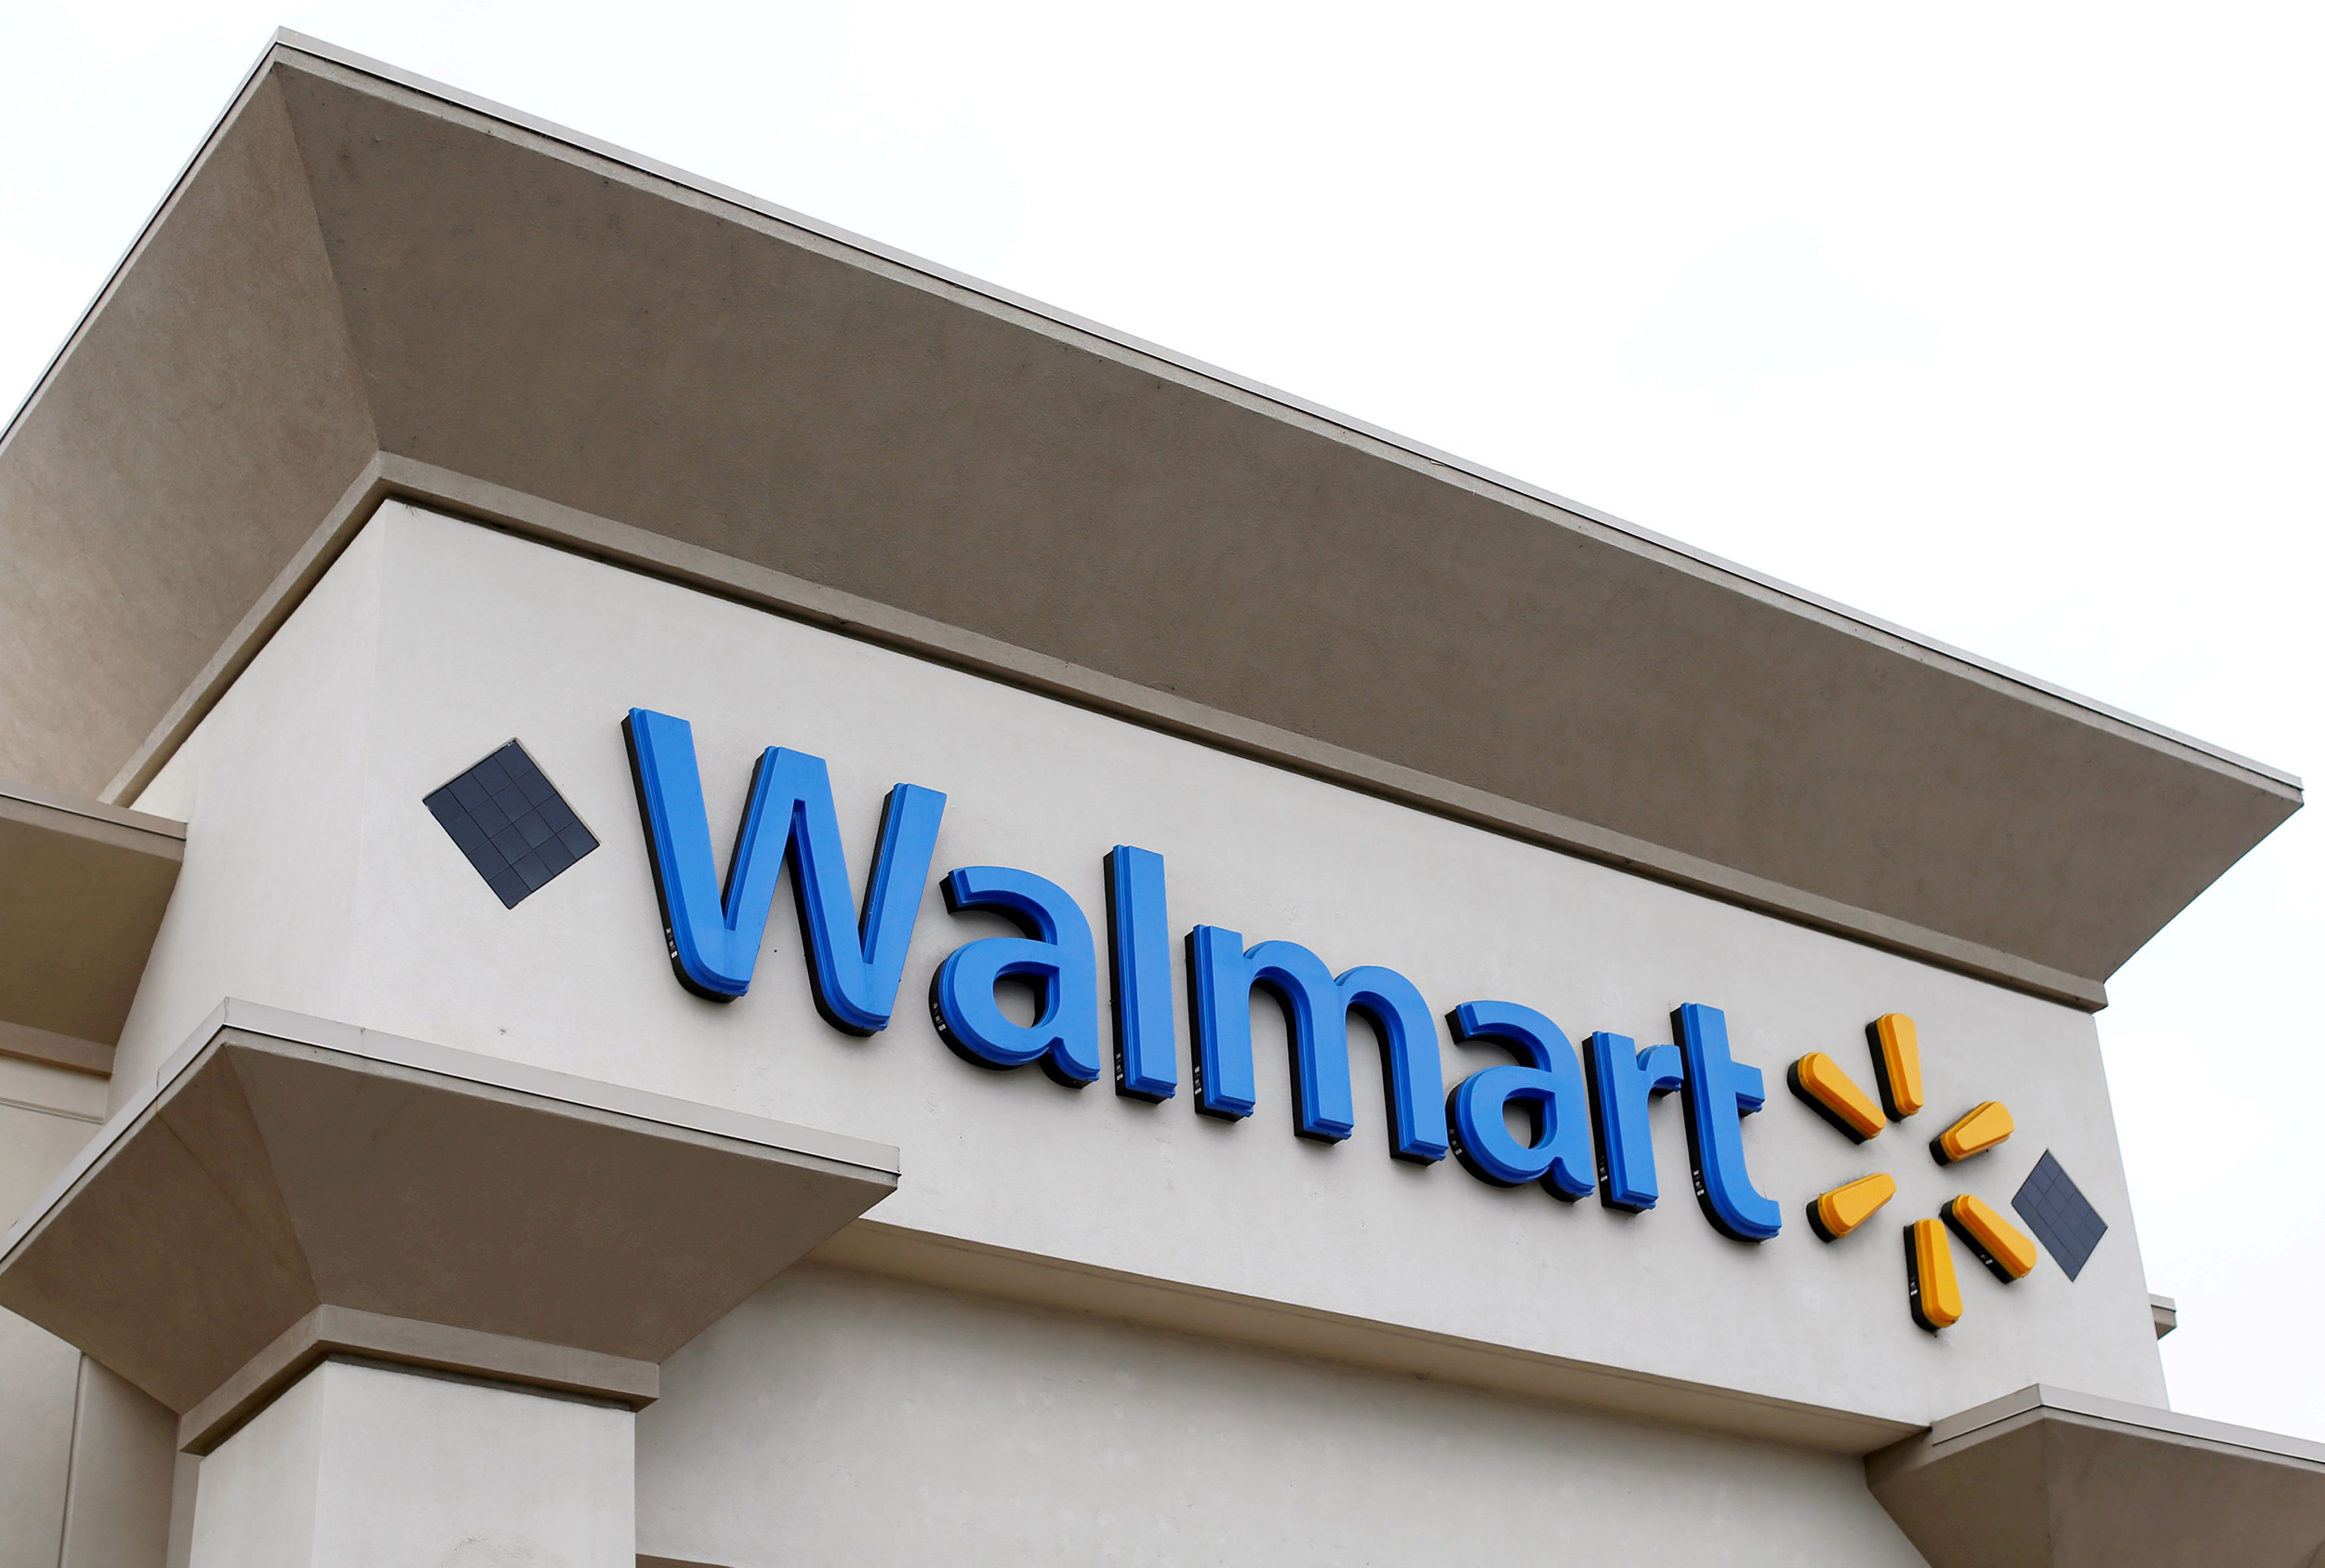 Greeter Job Going Away But Disabled Employees Are Not Walmart Says